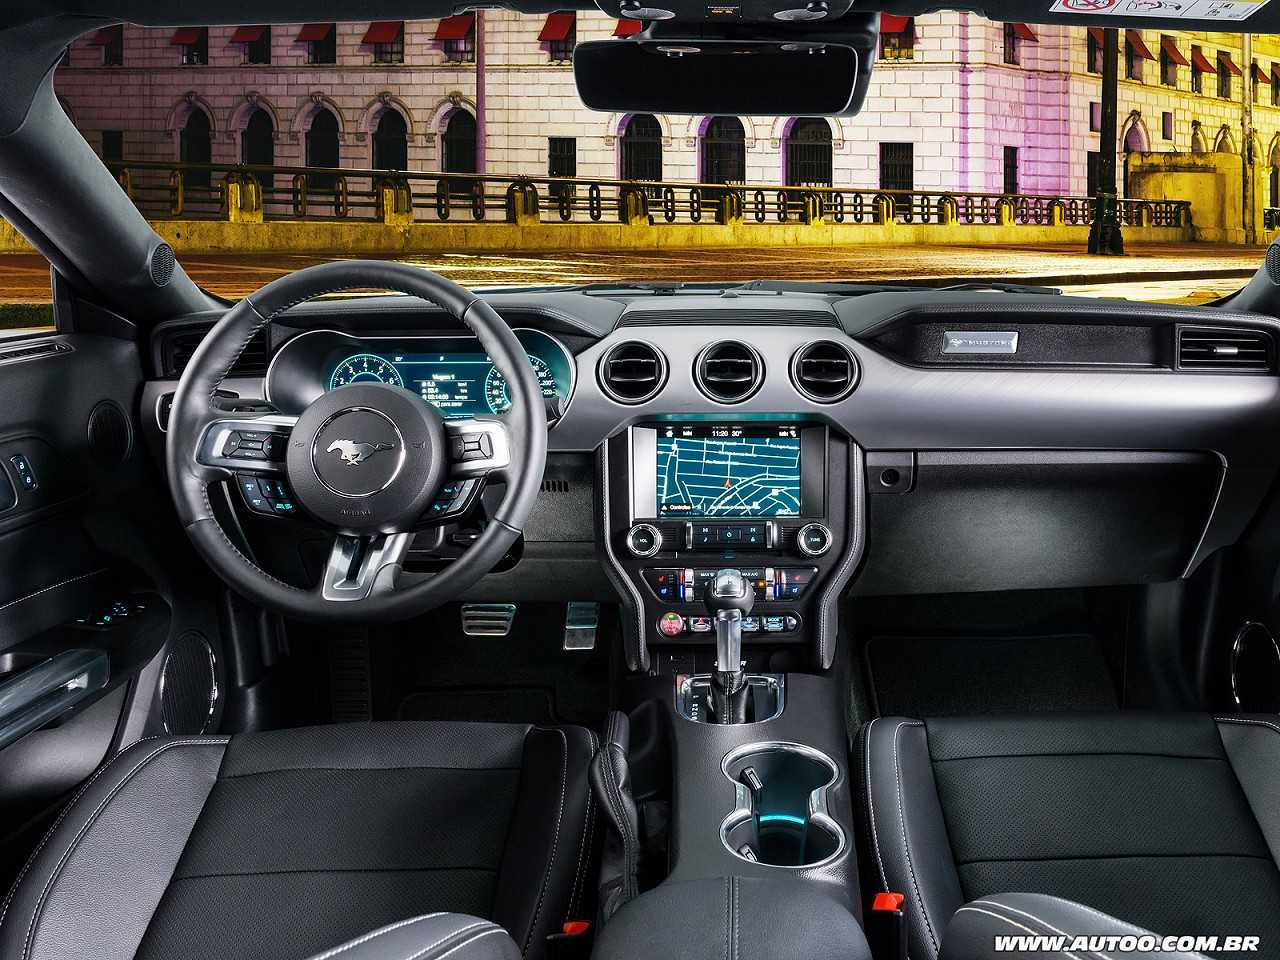 FordMustang 2018 - painel